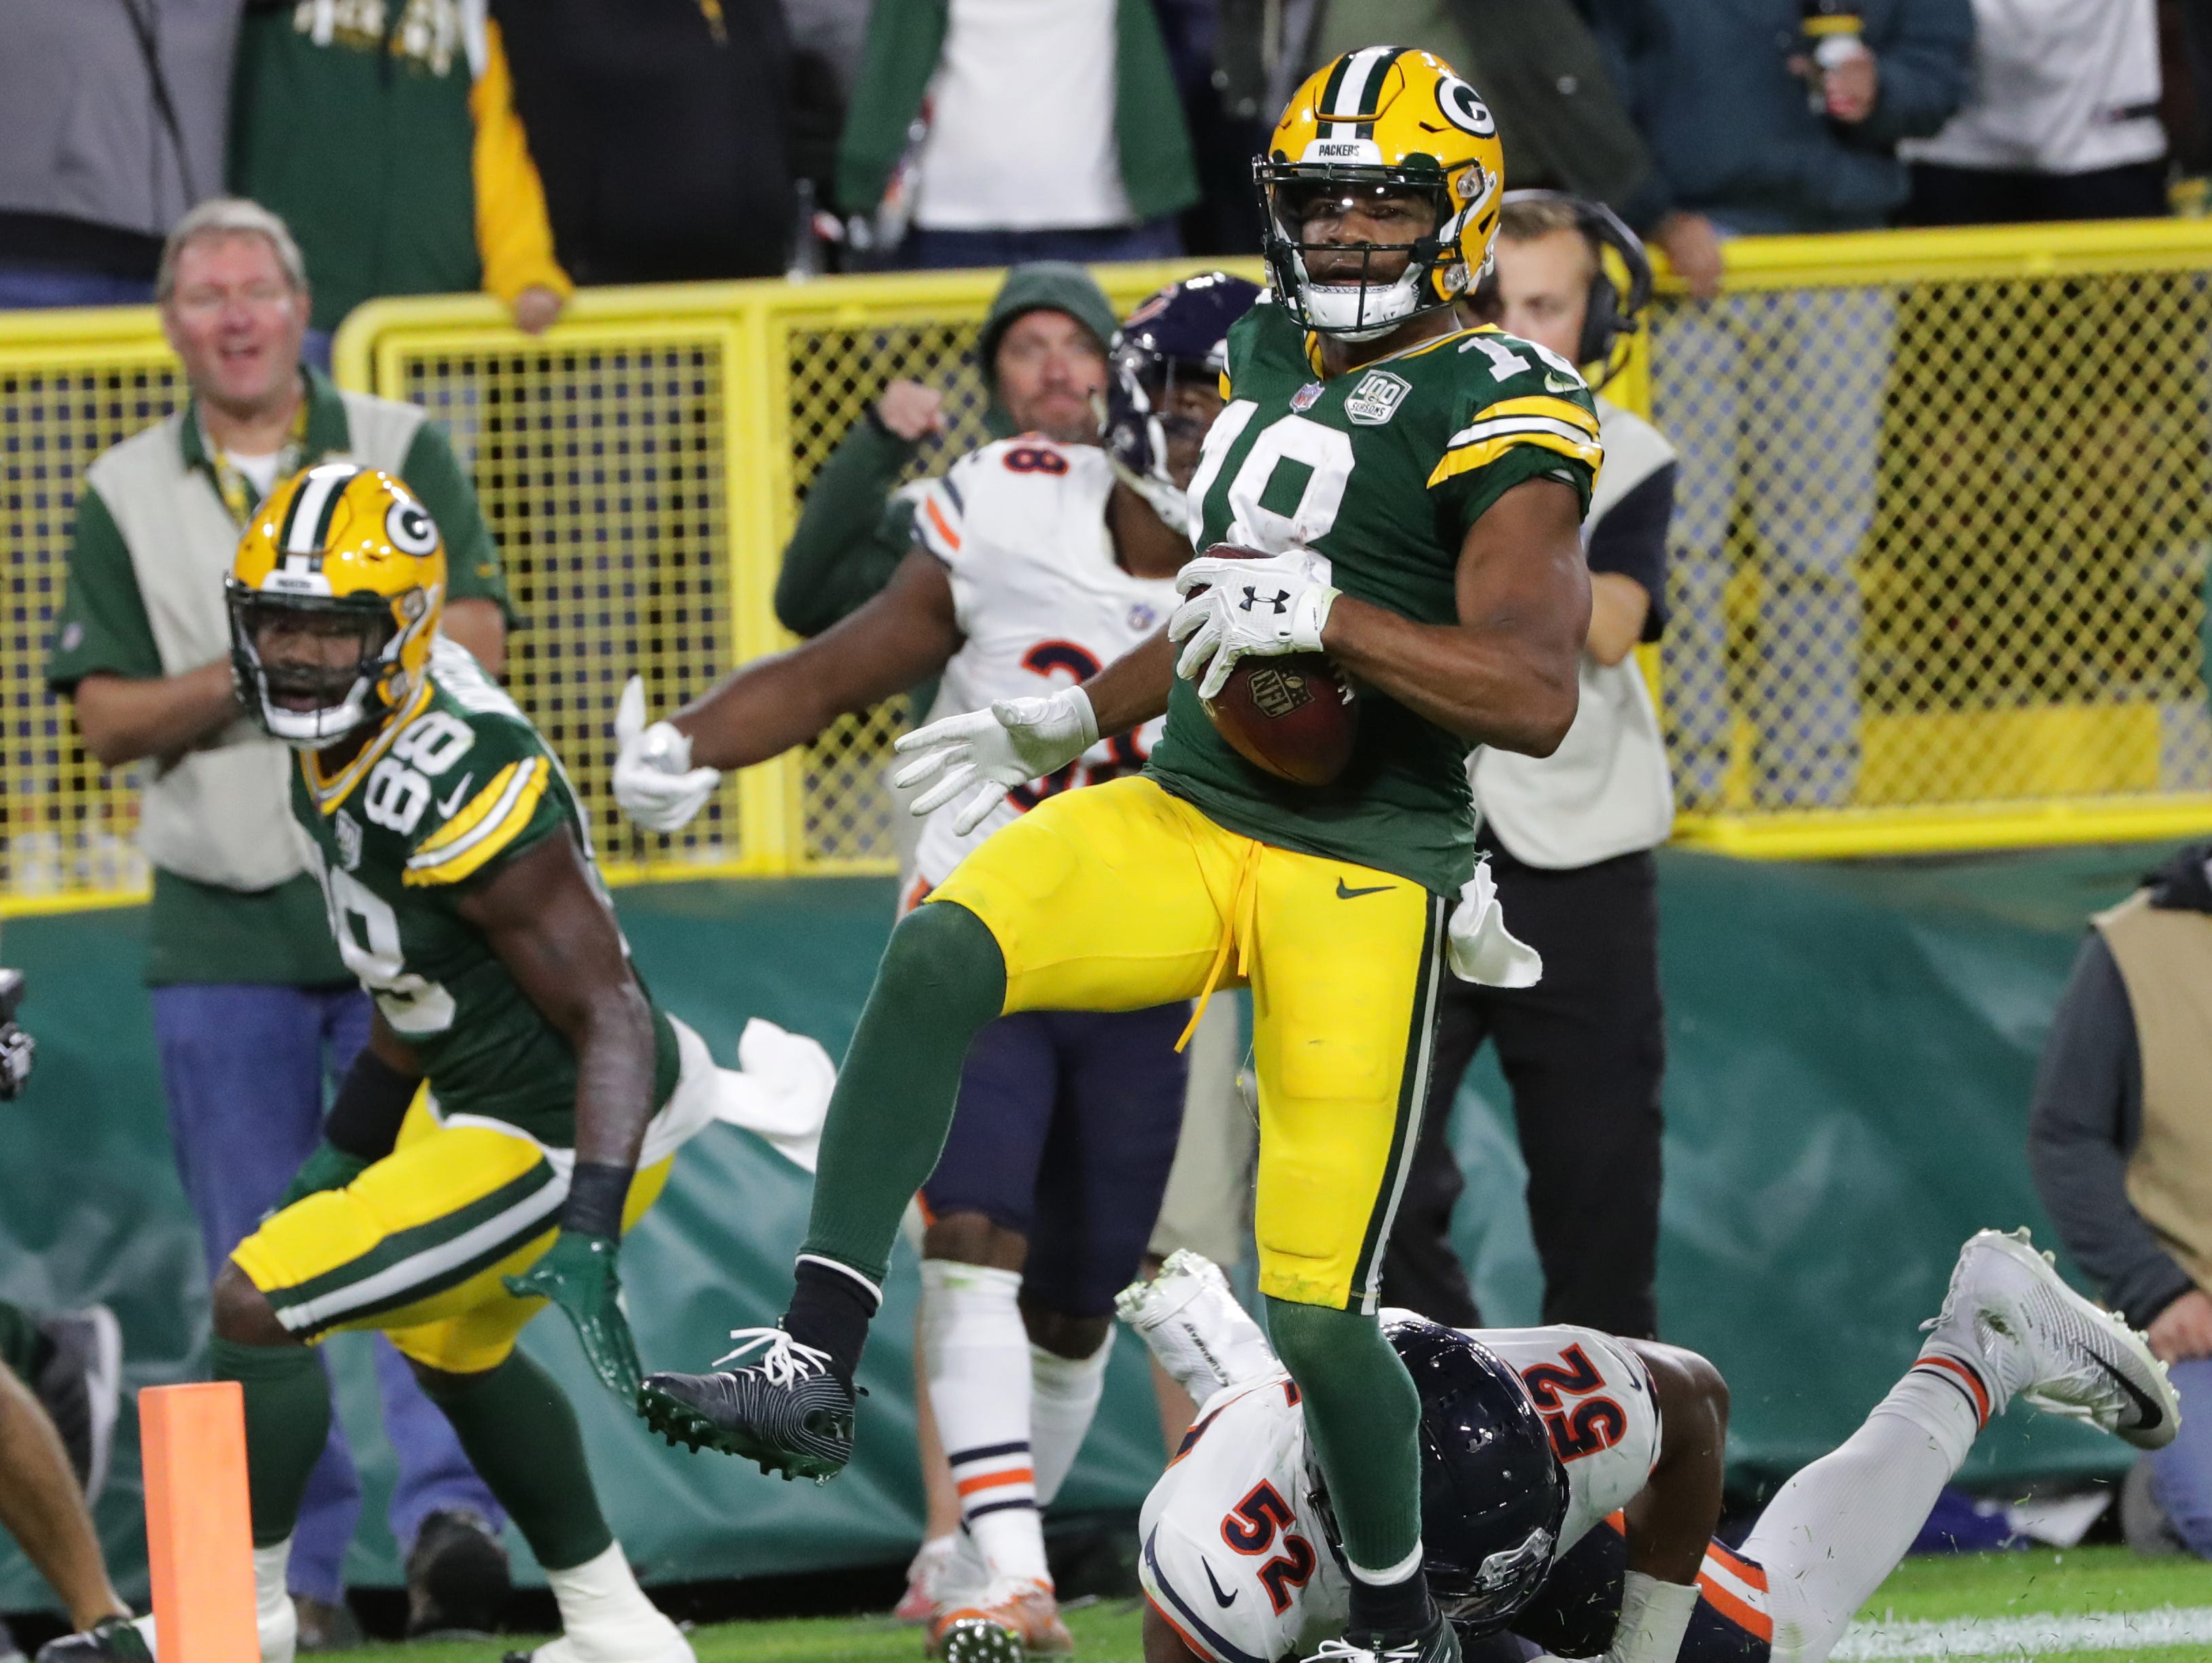 Green Bay Packers wide receiver Randall Cobb (18) scores a touchdown on a 75-yard reception despite the efforts of Chicago Bears linebacker Khalil Mack (52)during the fourth quarter of their game against the Chicago Bears Sunday, September 9, 2018 at Lambeau Field in Green Bay, Wis.